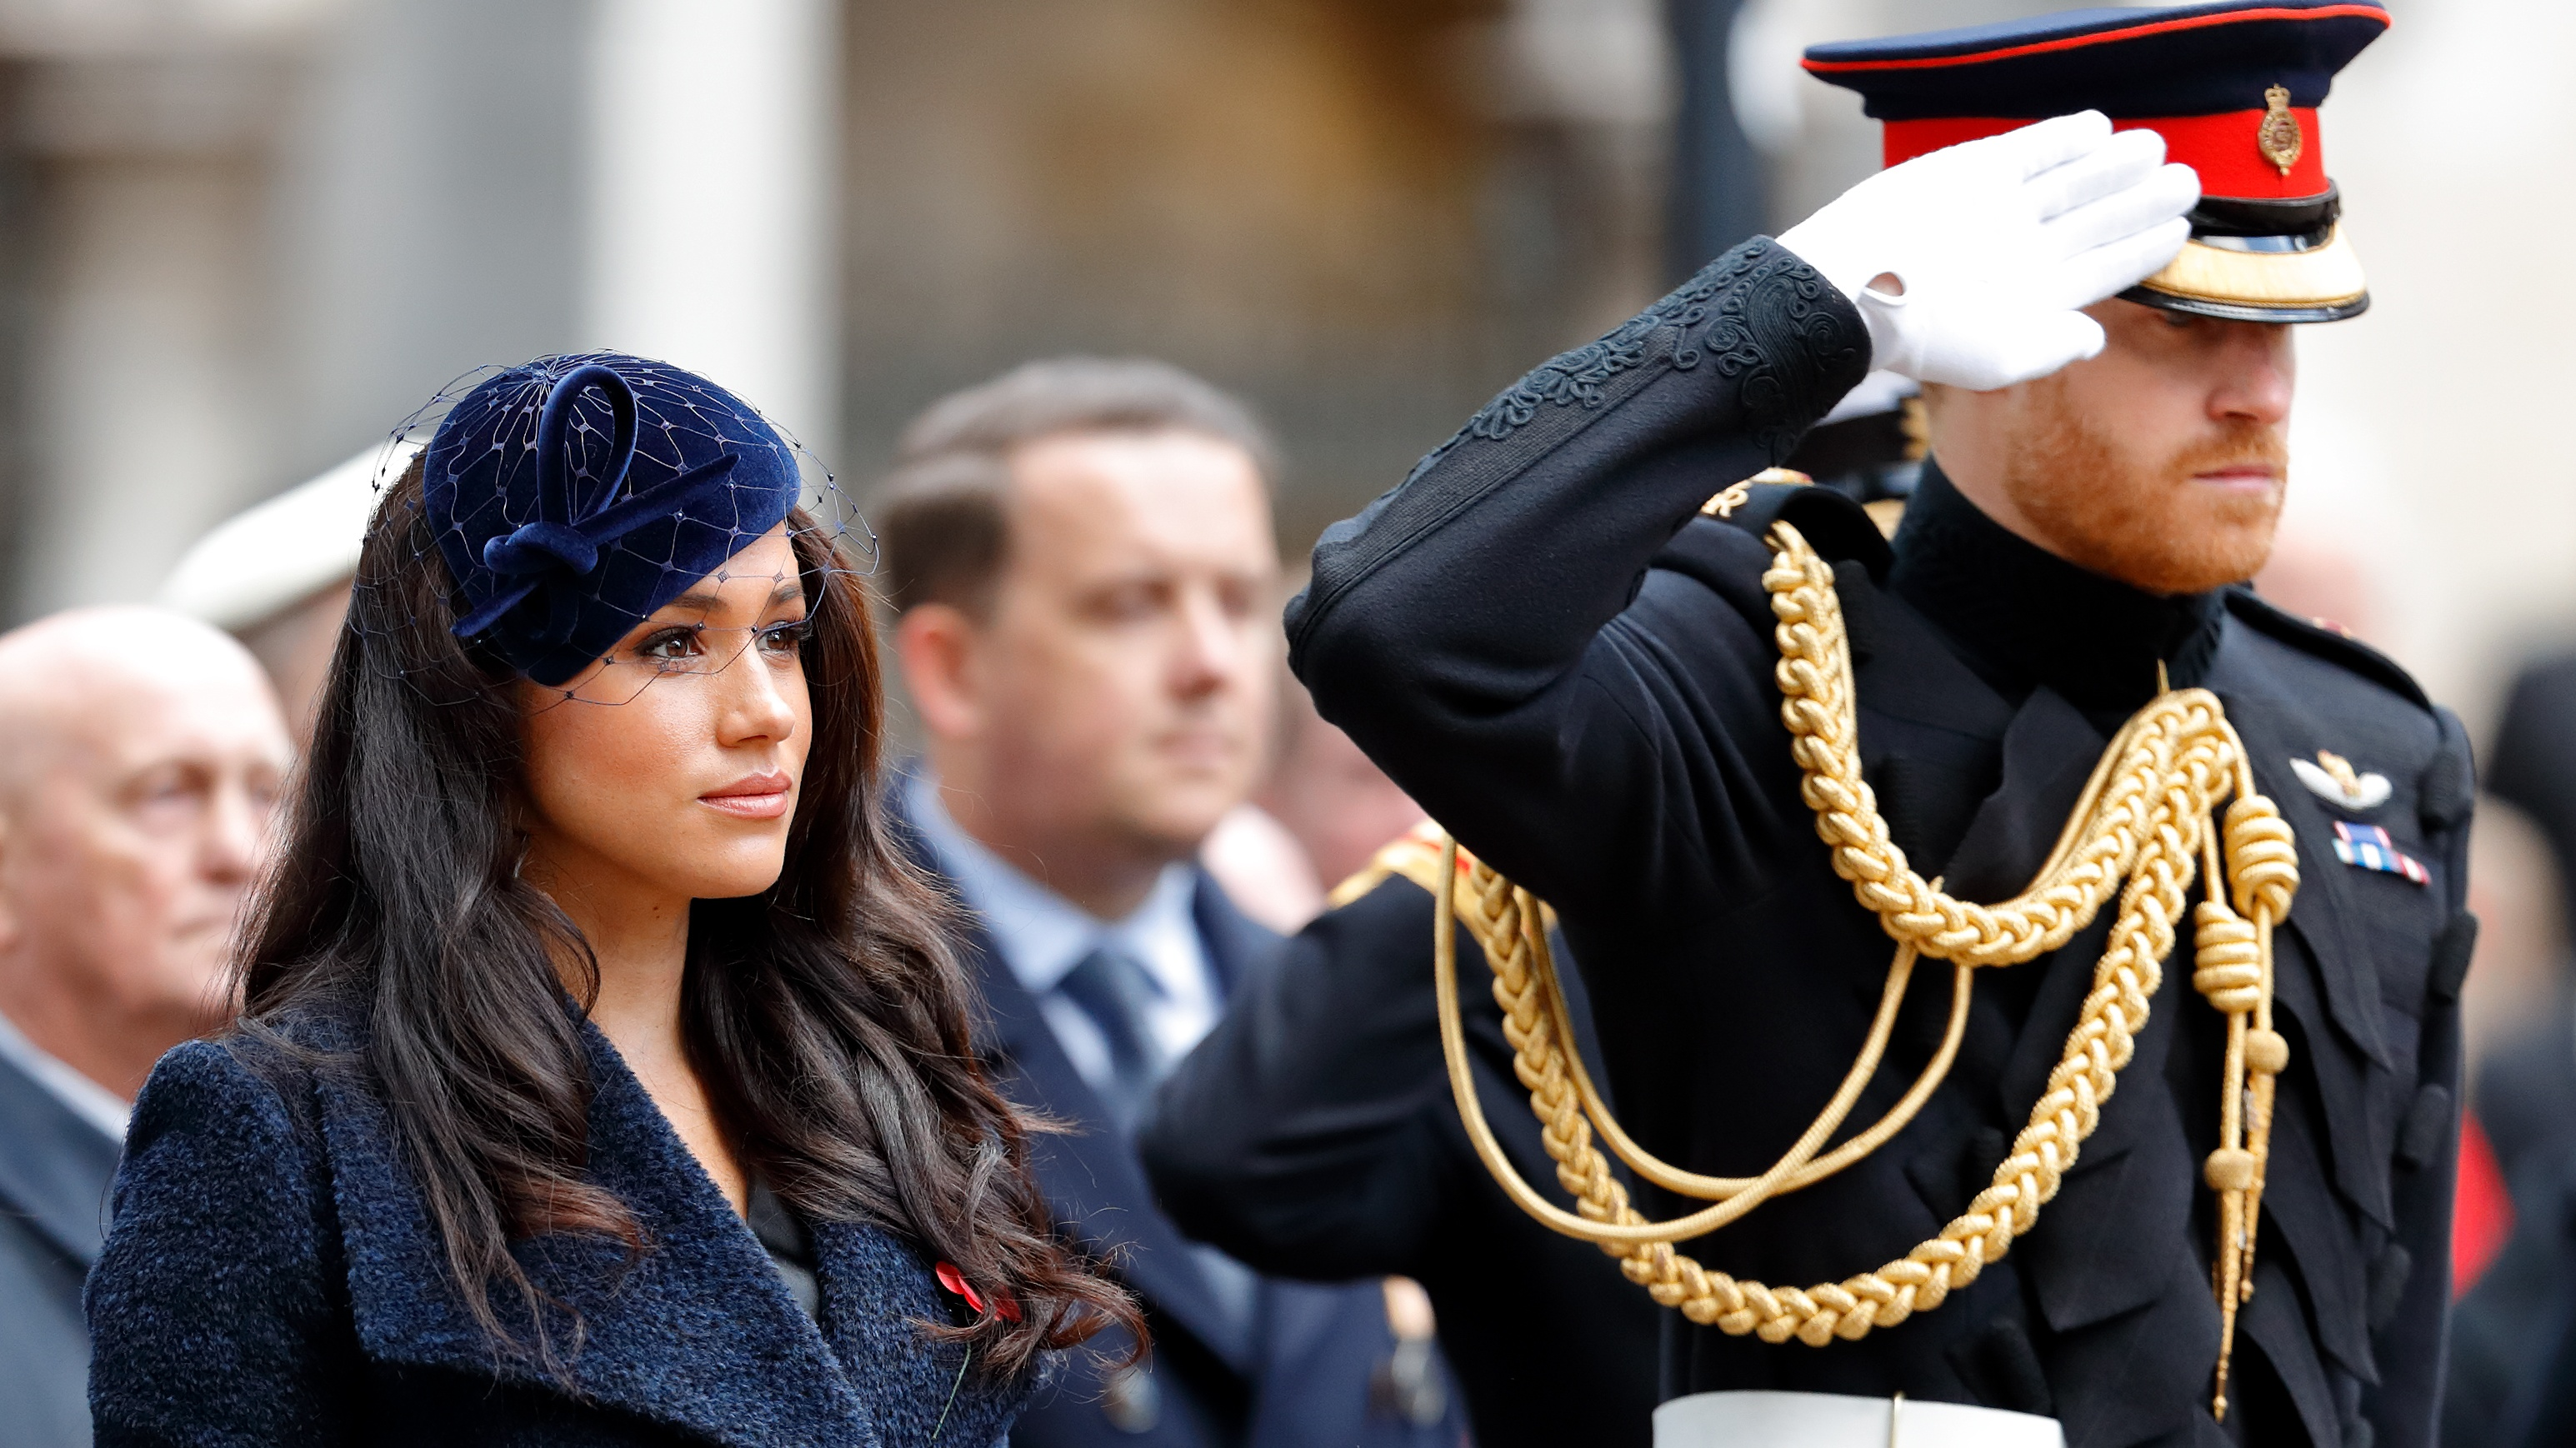 Royal Family Tensions Were Behind Meghan Markle And Prince Harry's Decision